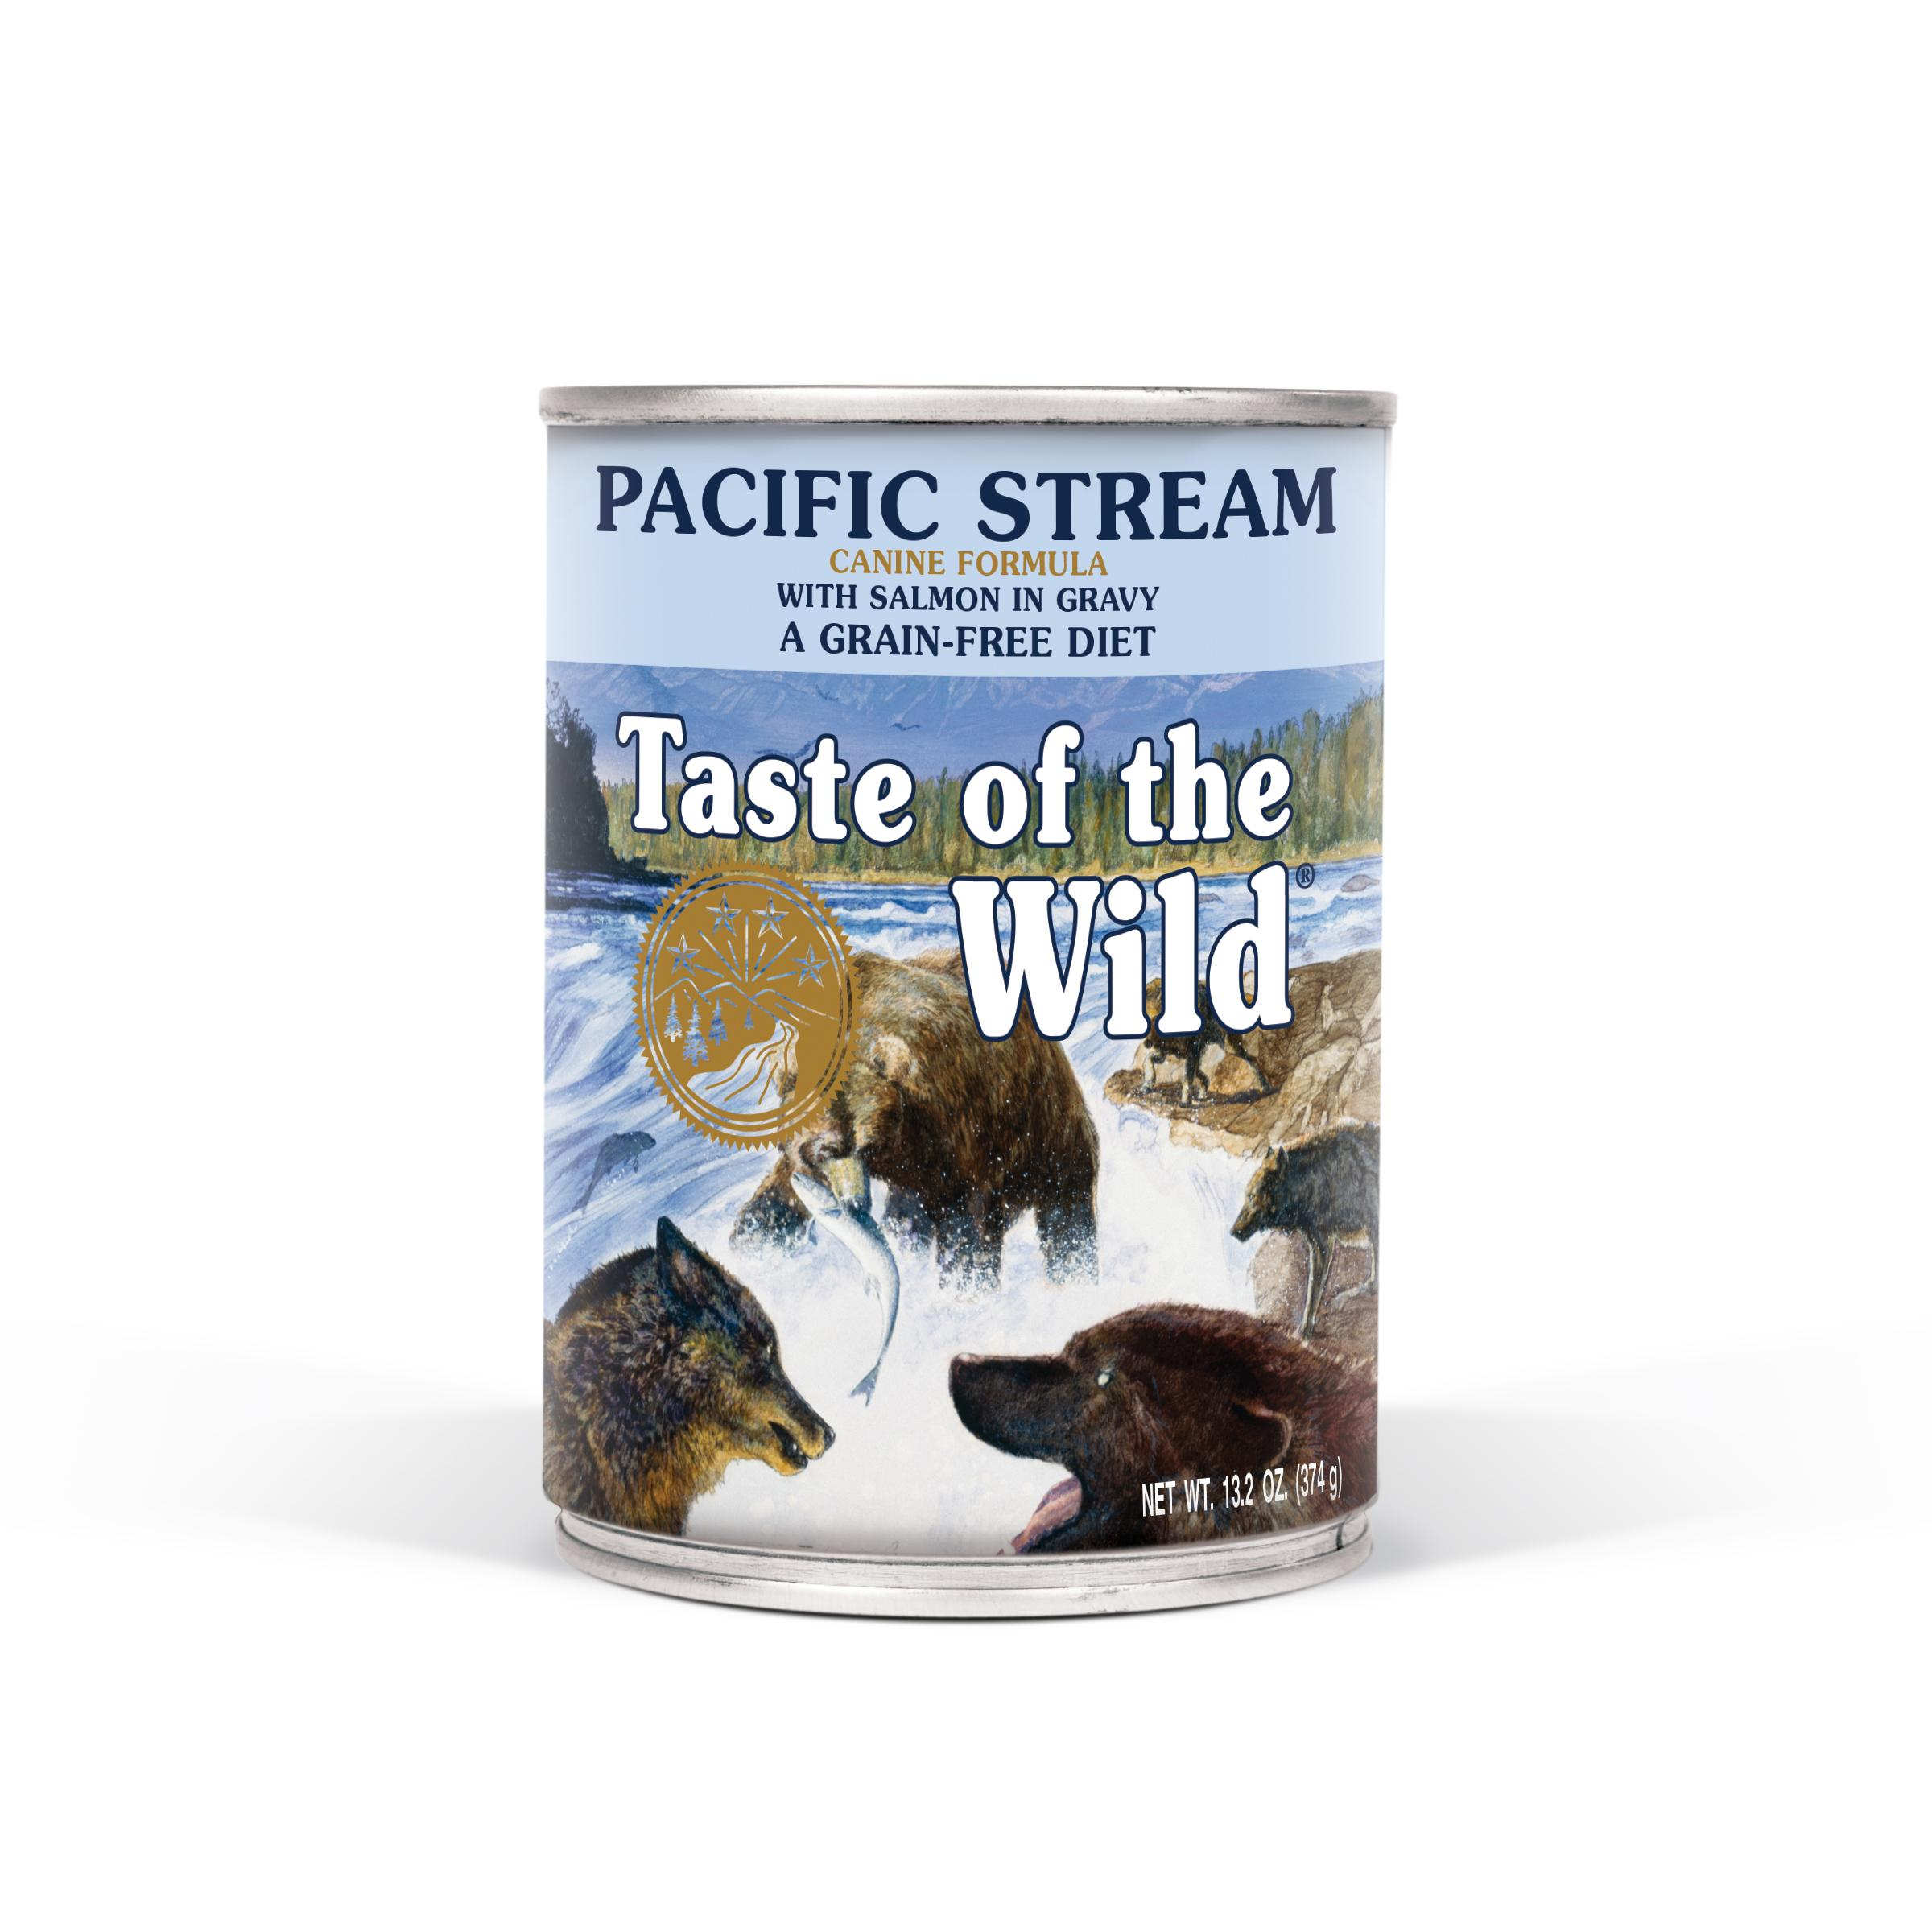 Taste of the Wild Pacific Stream Grain-Free Canned Dog Food Image